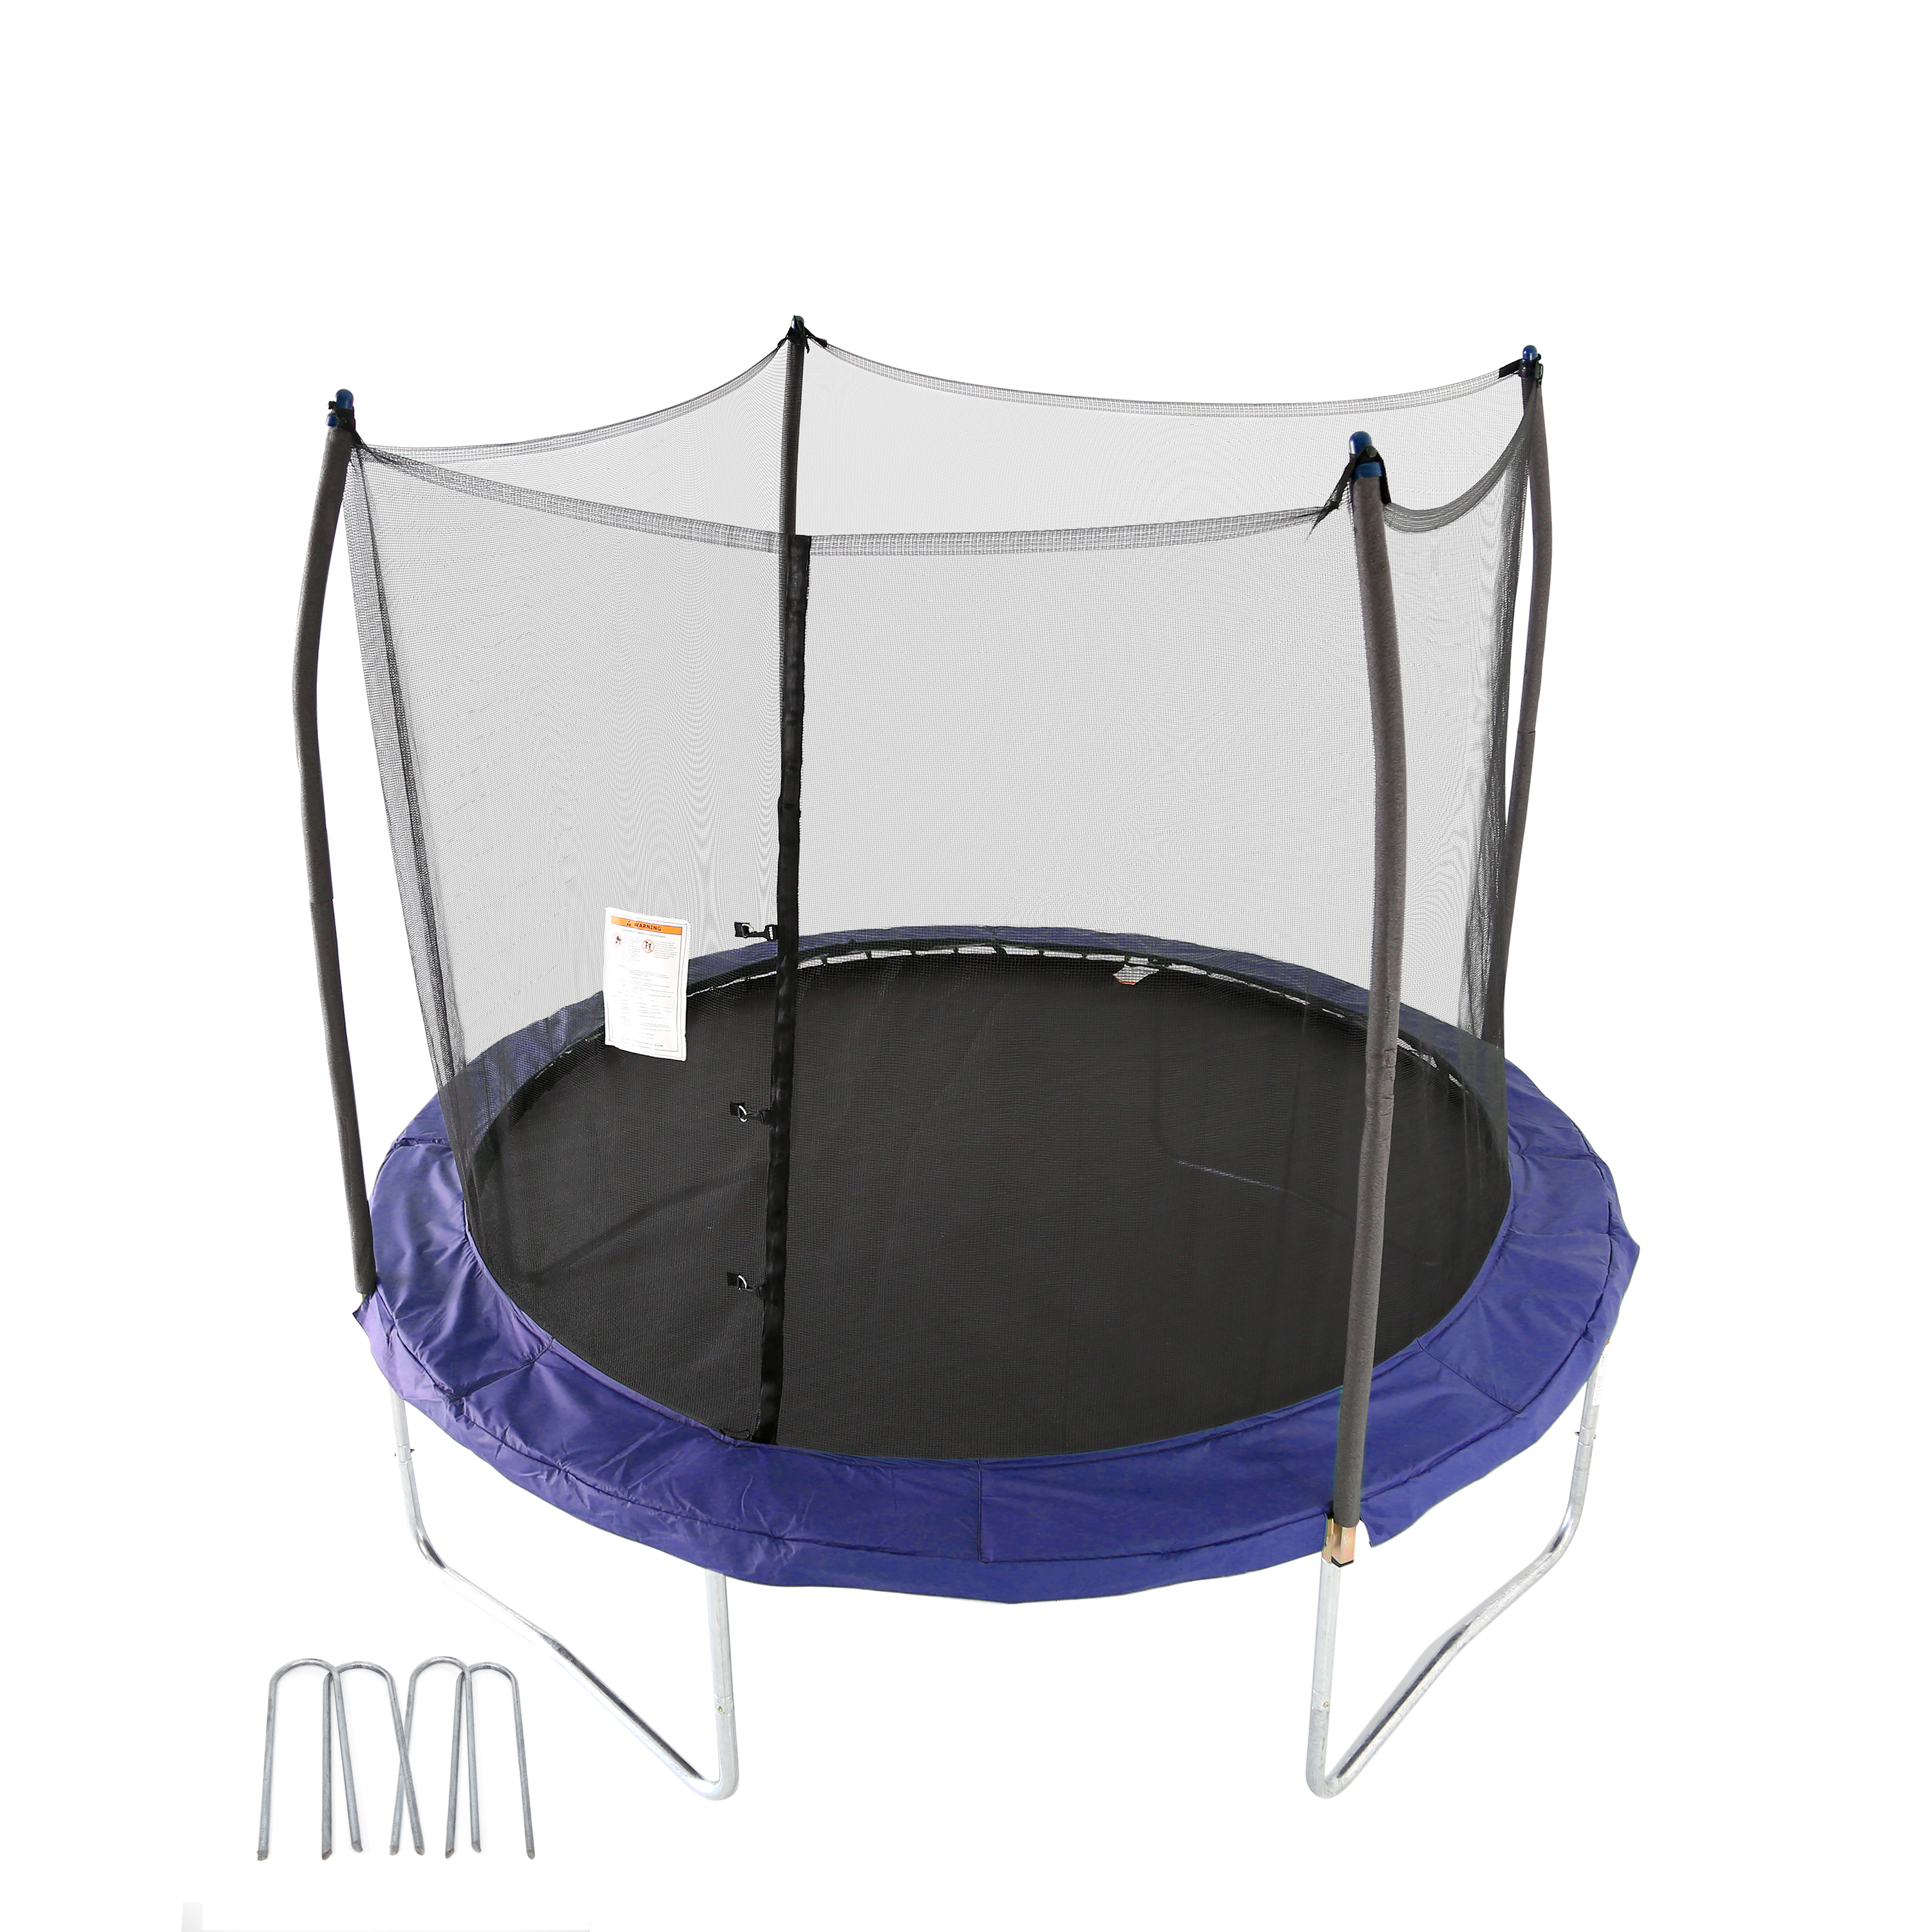 Skywalker Trampolines 10-Foot Trampoline, with Safety Enclosure and Wind Stakes, Blue